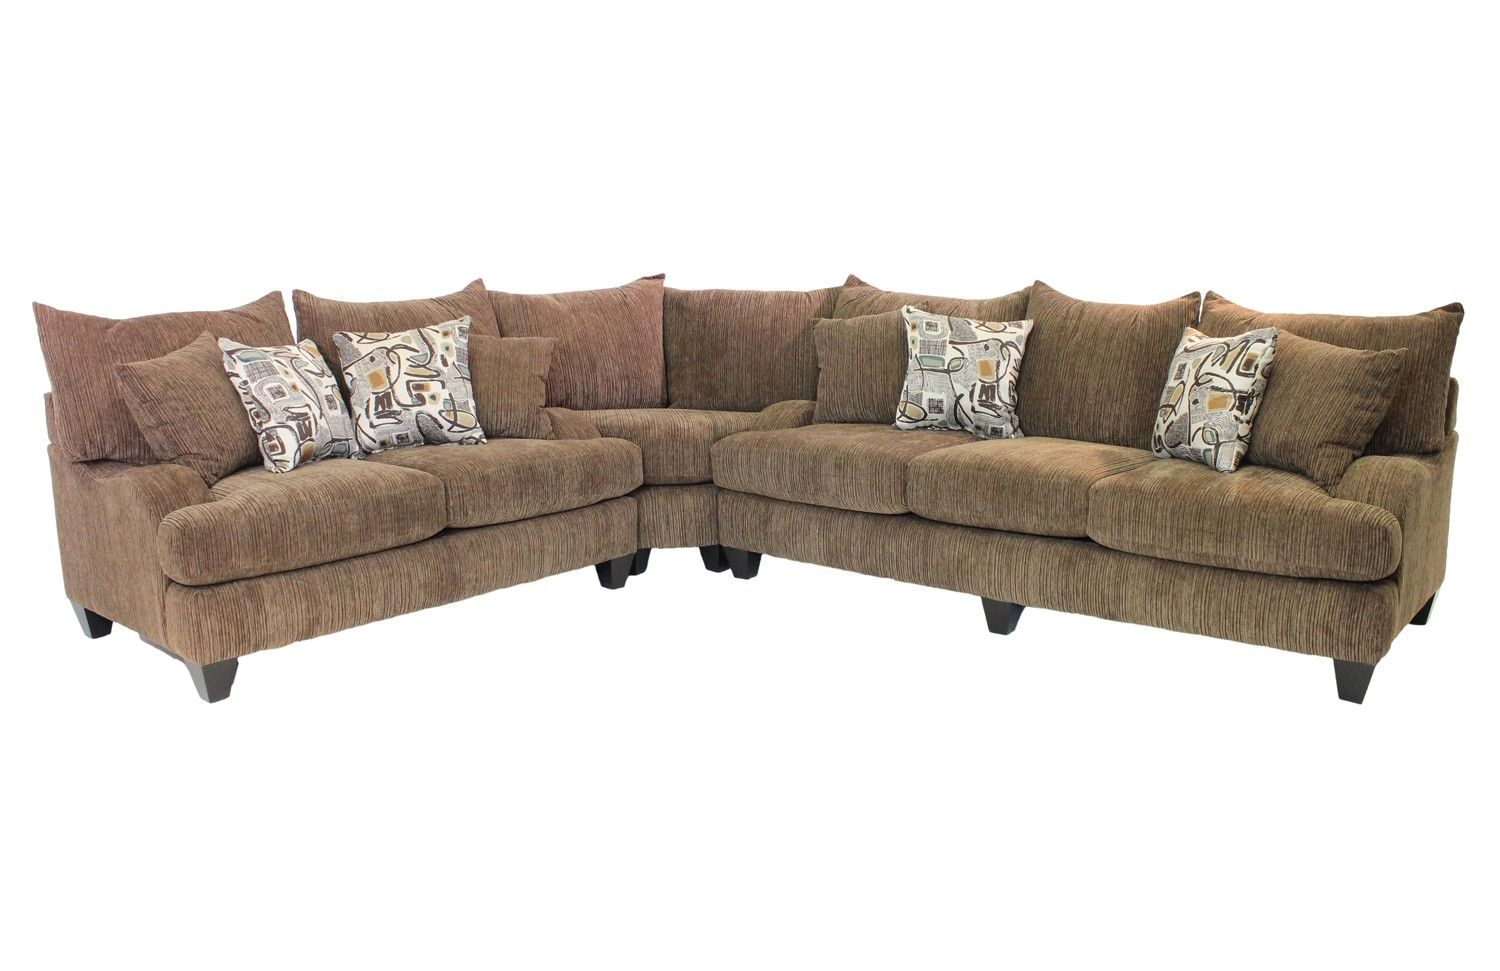 Living Room Furniture For Less Tabby Brown Sectional Living Room Furniture Sale Mor